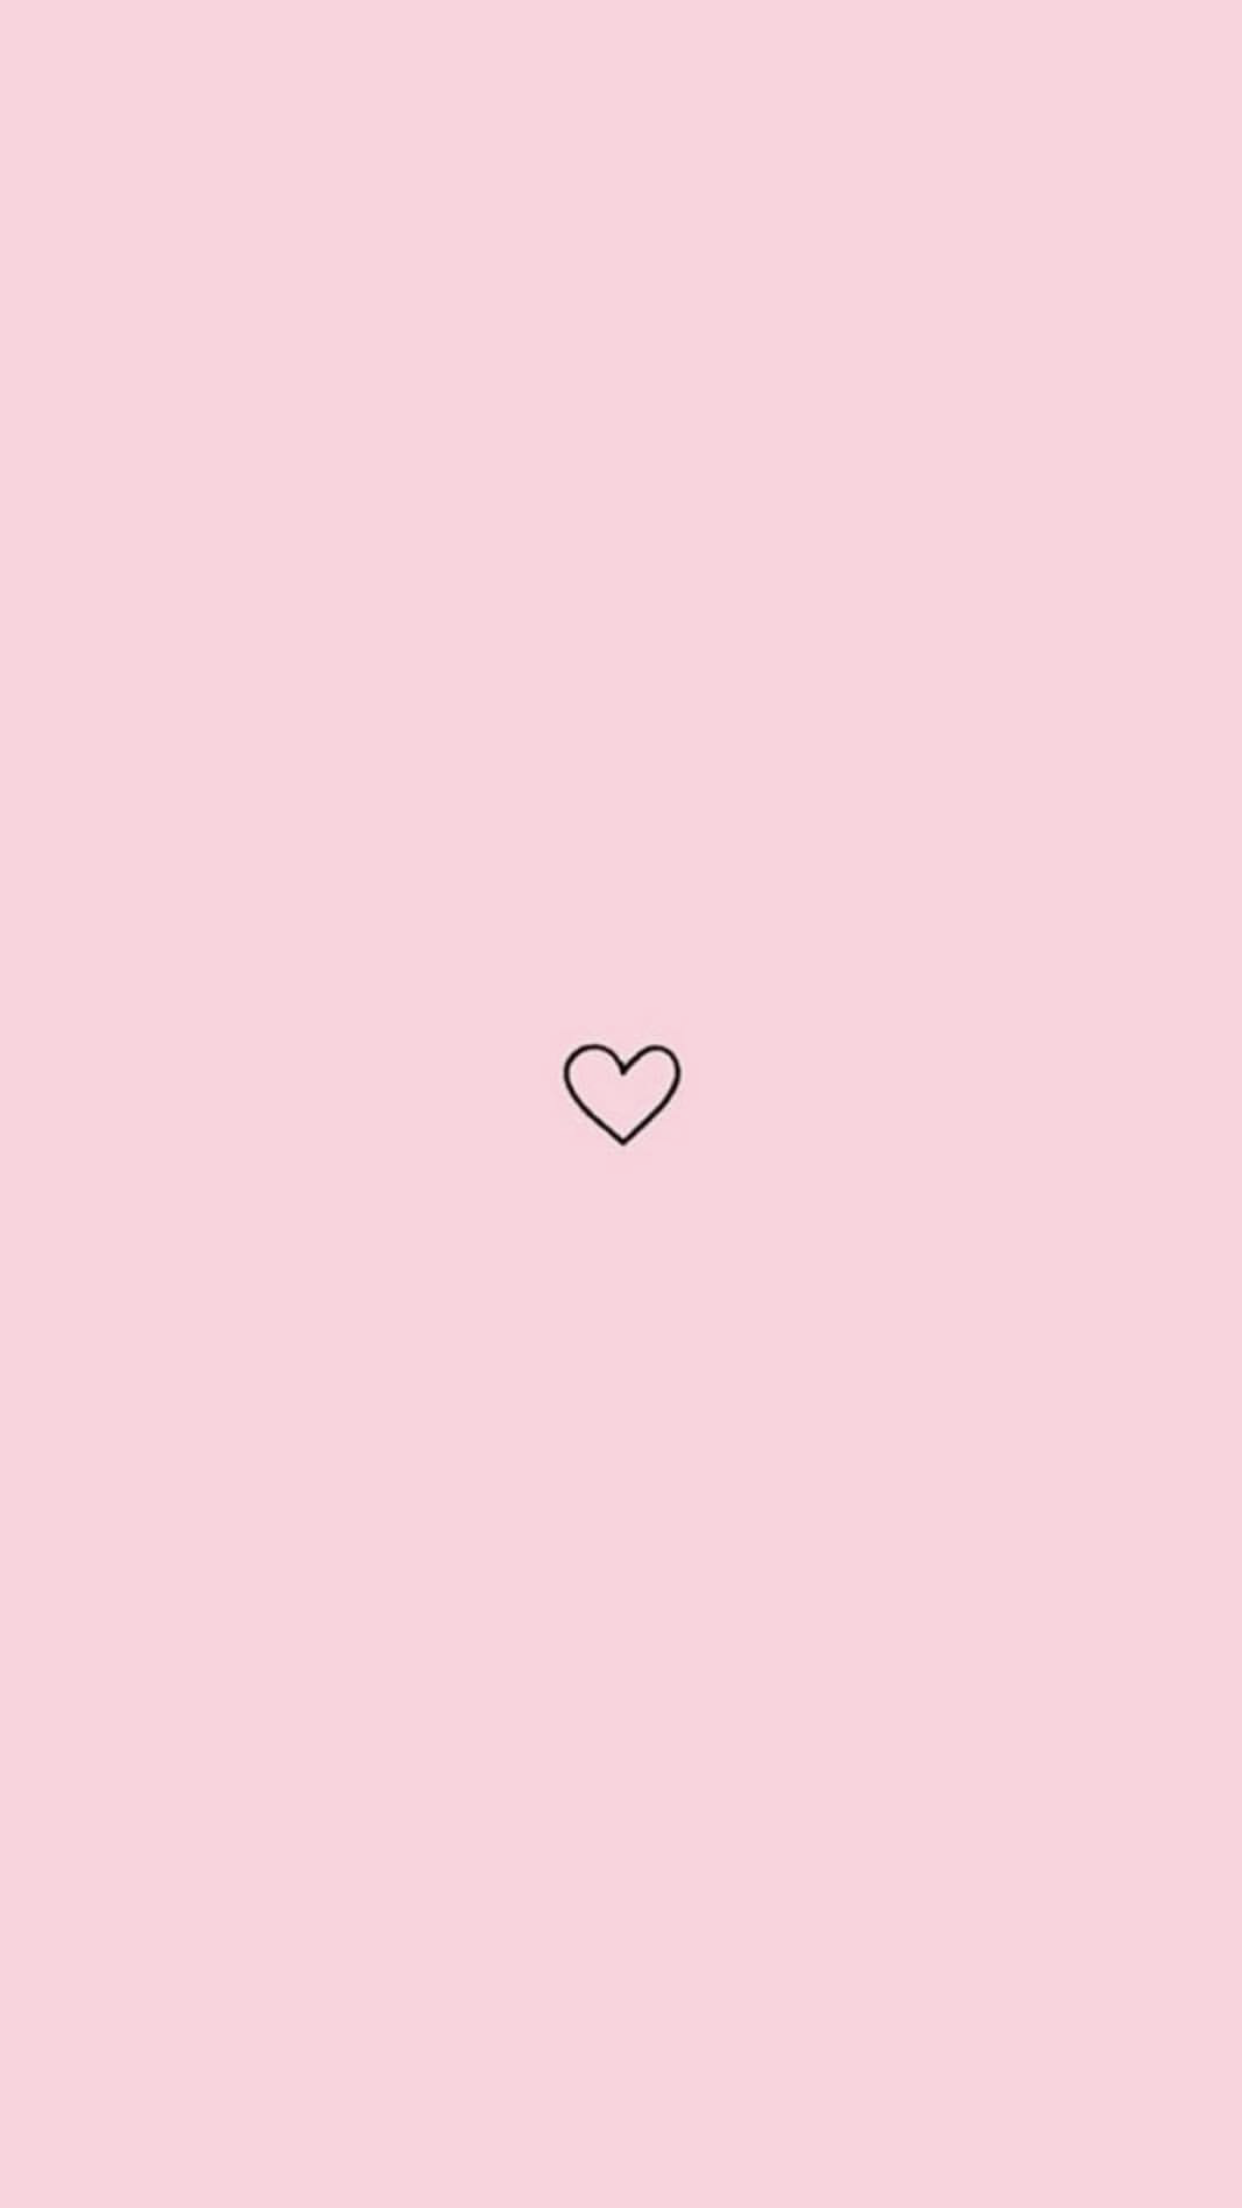 Pin By Lily A On Prints Pink Wallpaper Iphone Aesthetic Pink Wallpaper Iphone Wallpaper Iphone Cute Aesthetic Iphone Wallpaper